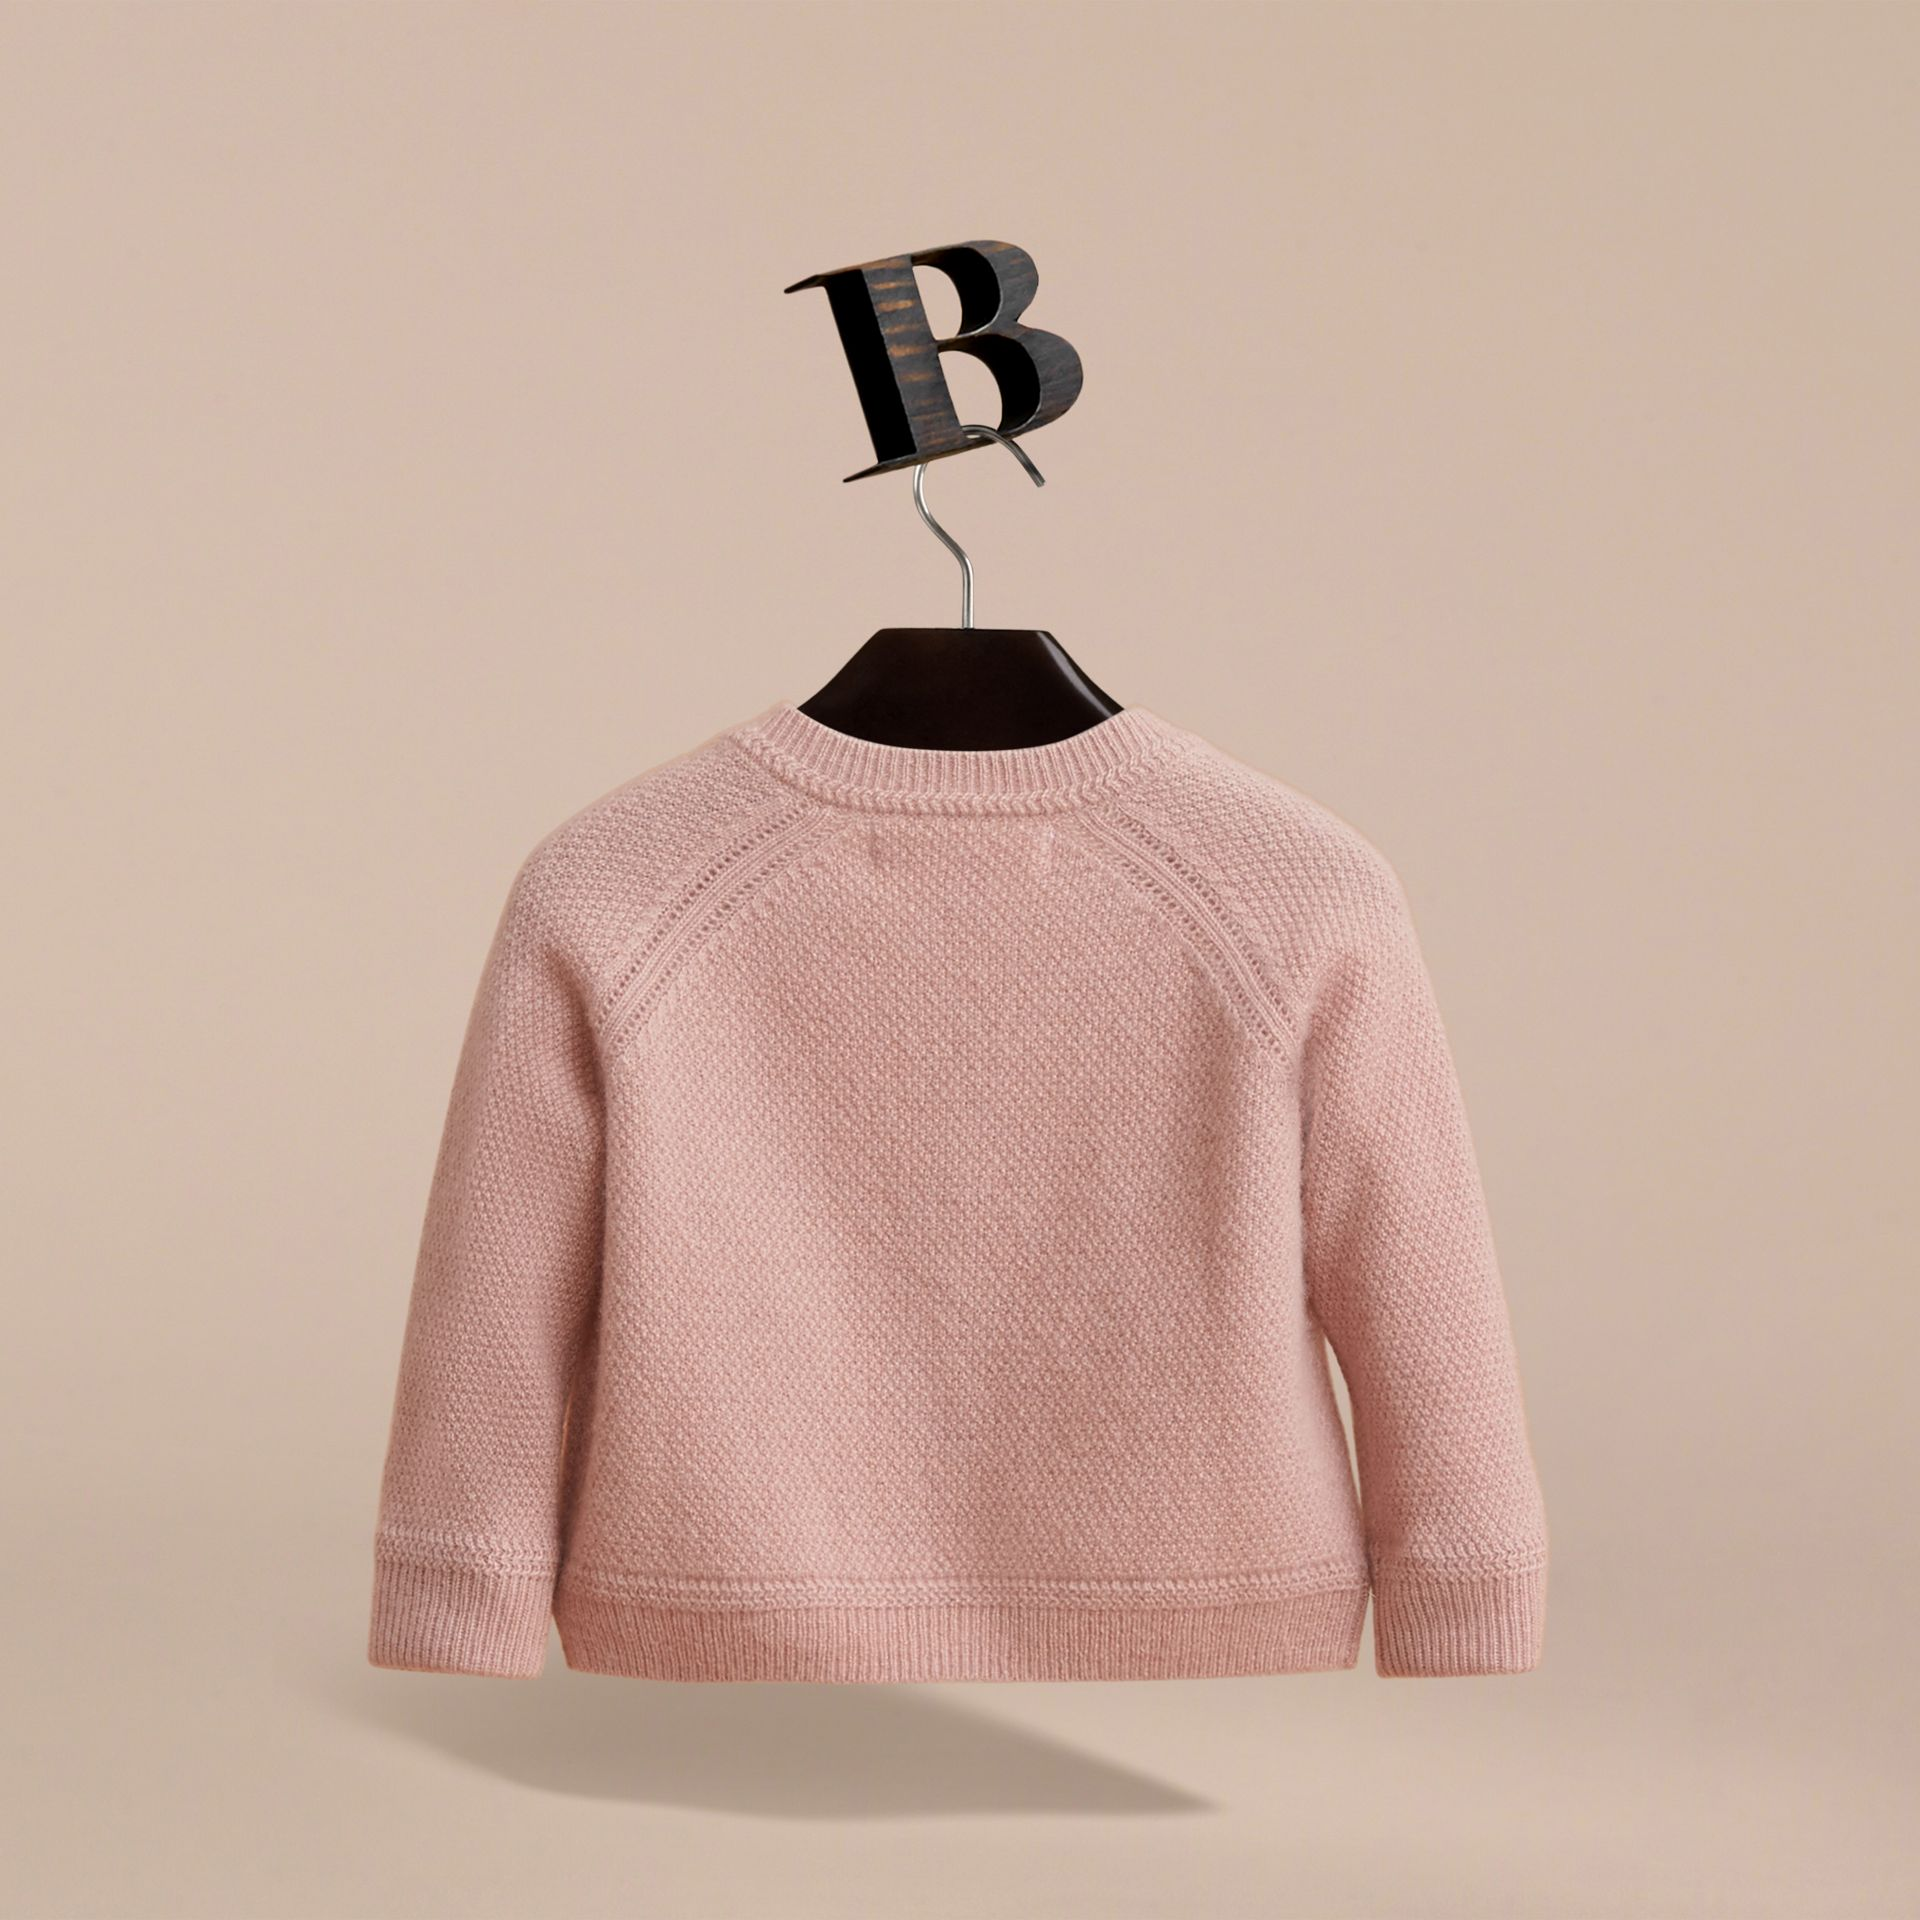 Textured Knit Cashmere Cardigan in Dusty Pink | Burberry Australia - gallery image 4